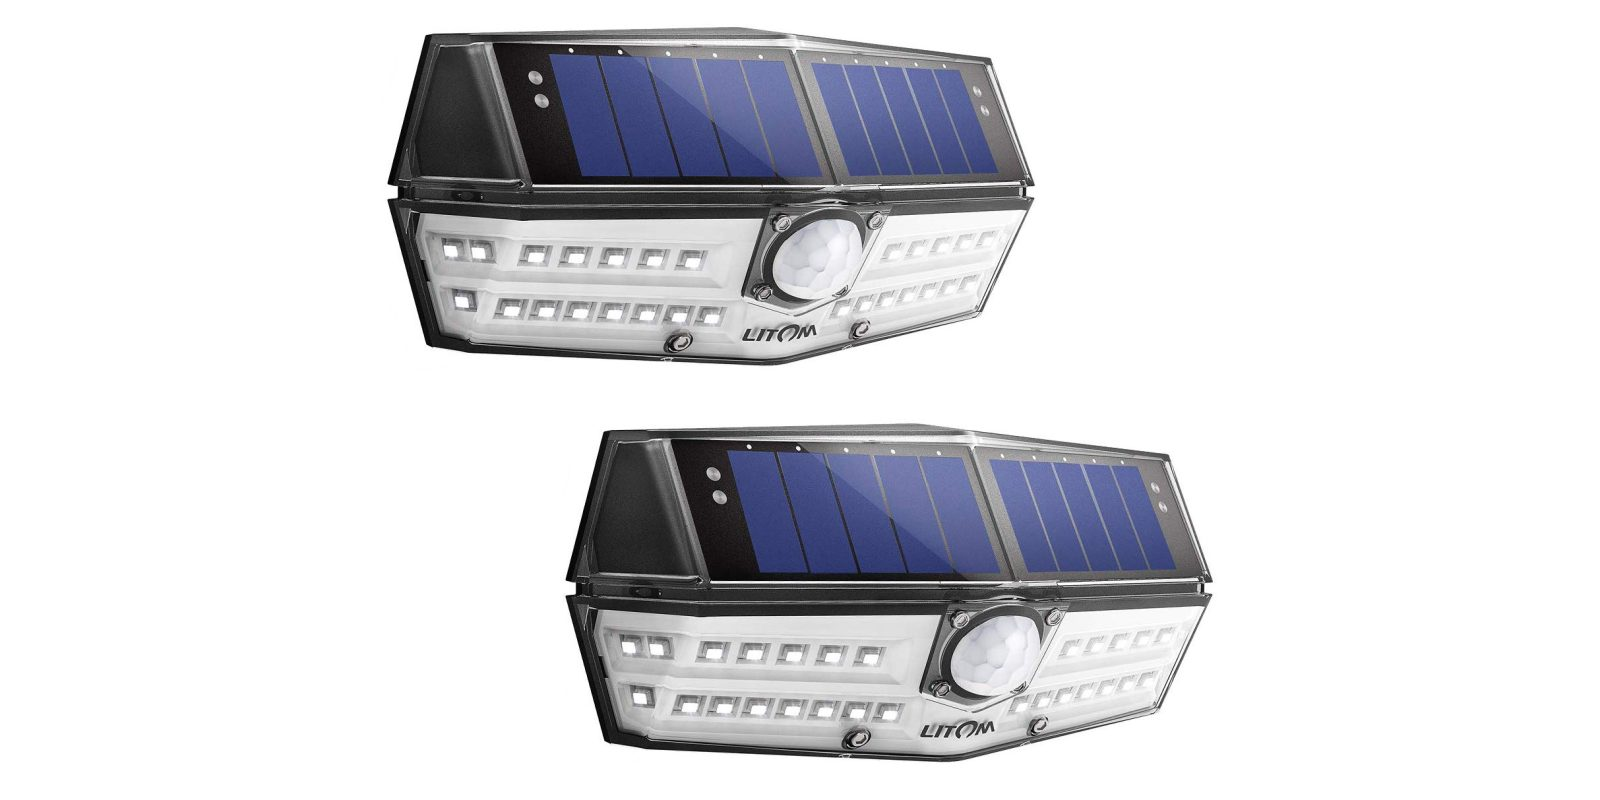 Green Deals: Score a two-pack of outdoor solar lights for $12, more